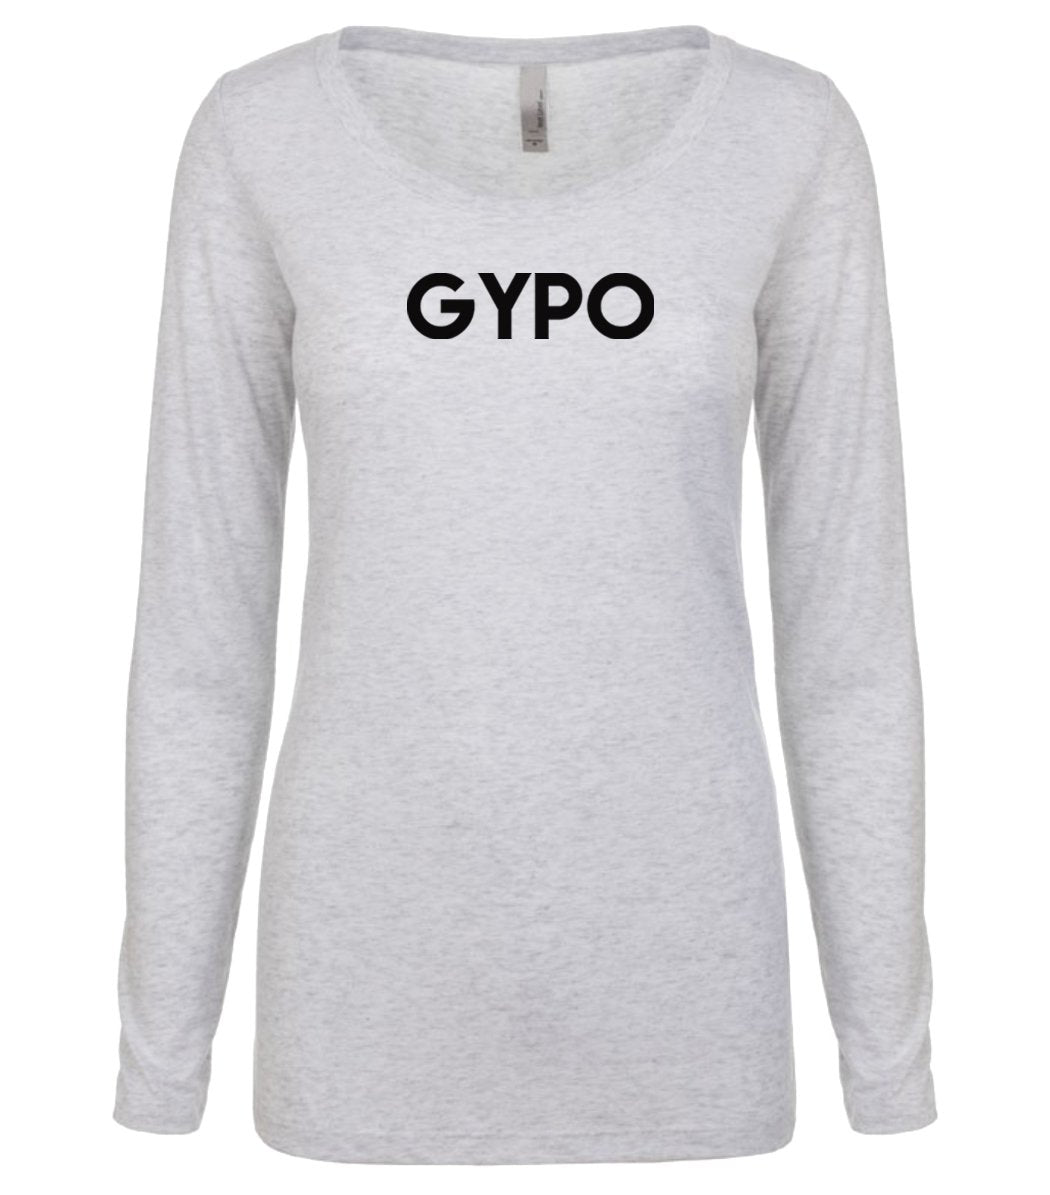 white GYPO long sleeve scoop shirt for women